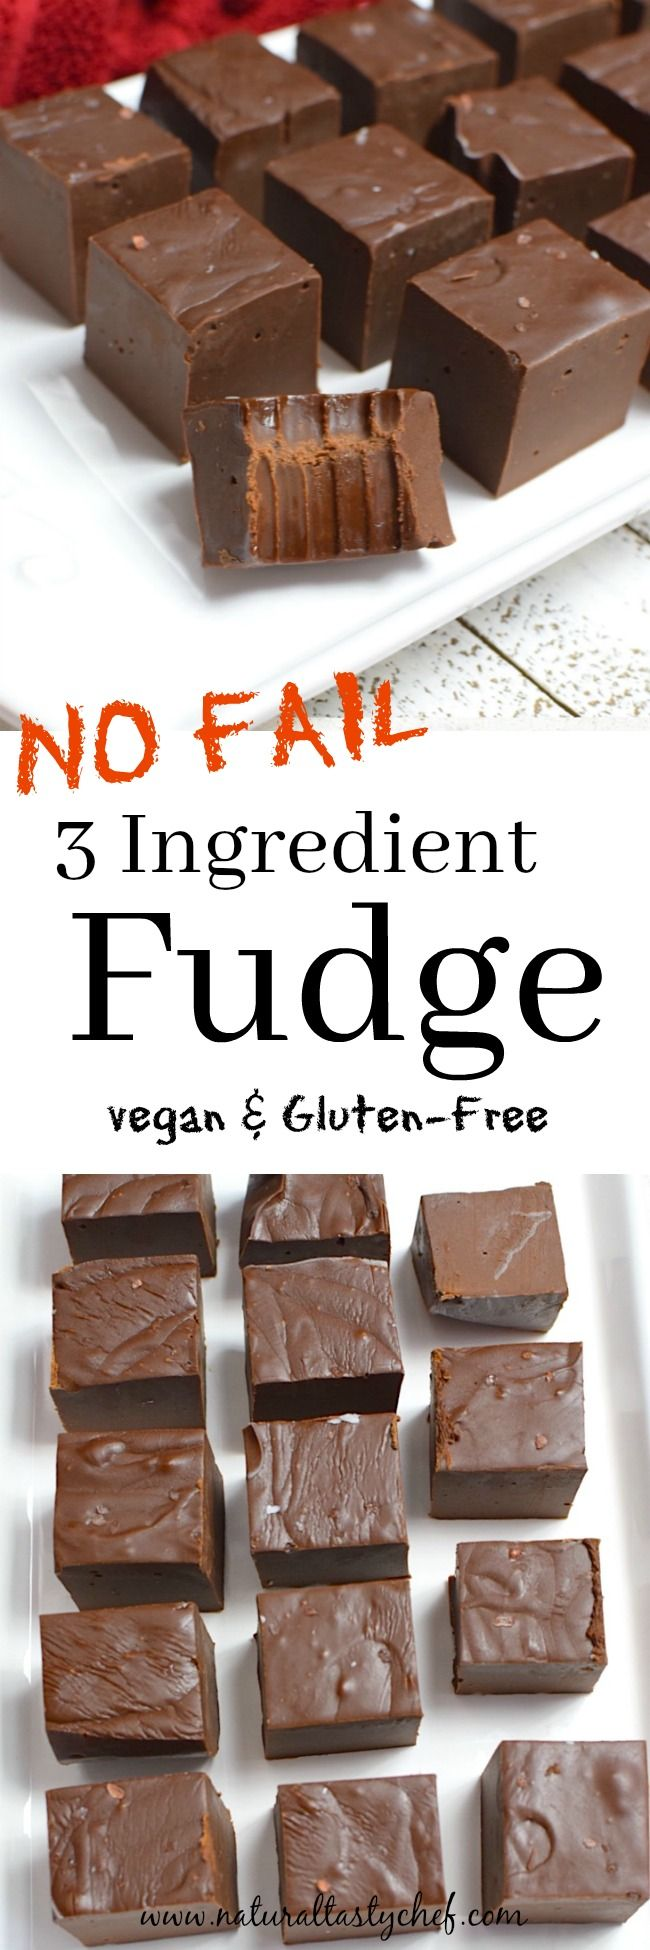 Easy Vegan Chocolate Fudge No Fail Natural Tasty Chef Recipe Fudge Recipes Vegan Fudge Vegan Desserts